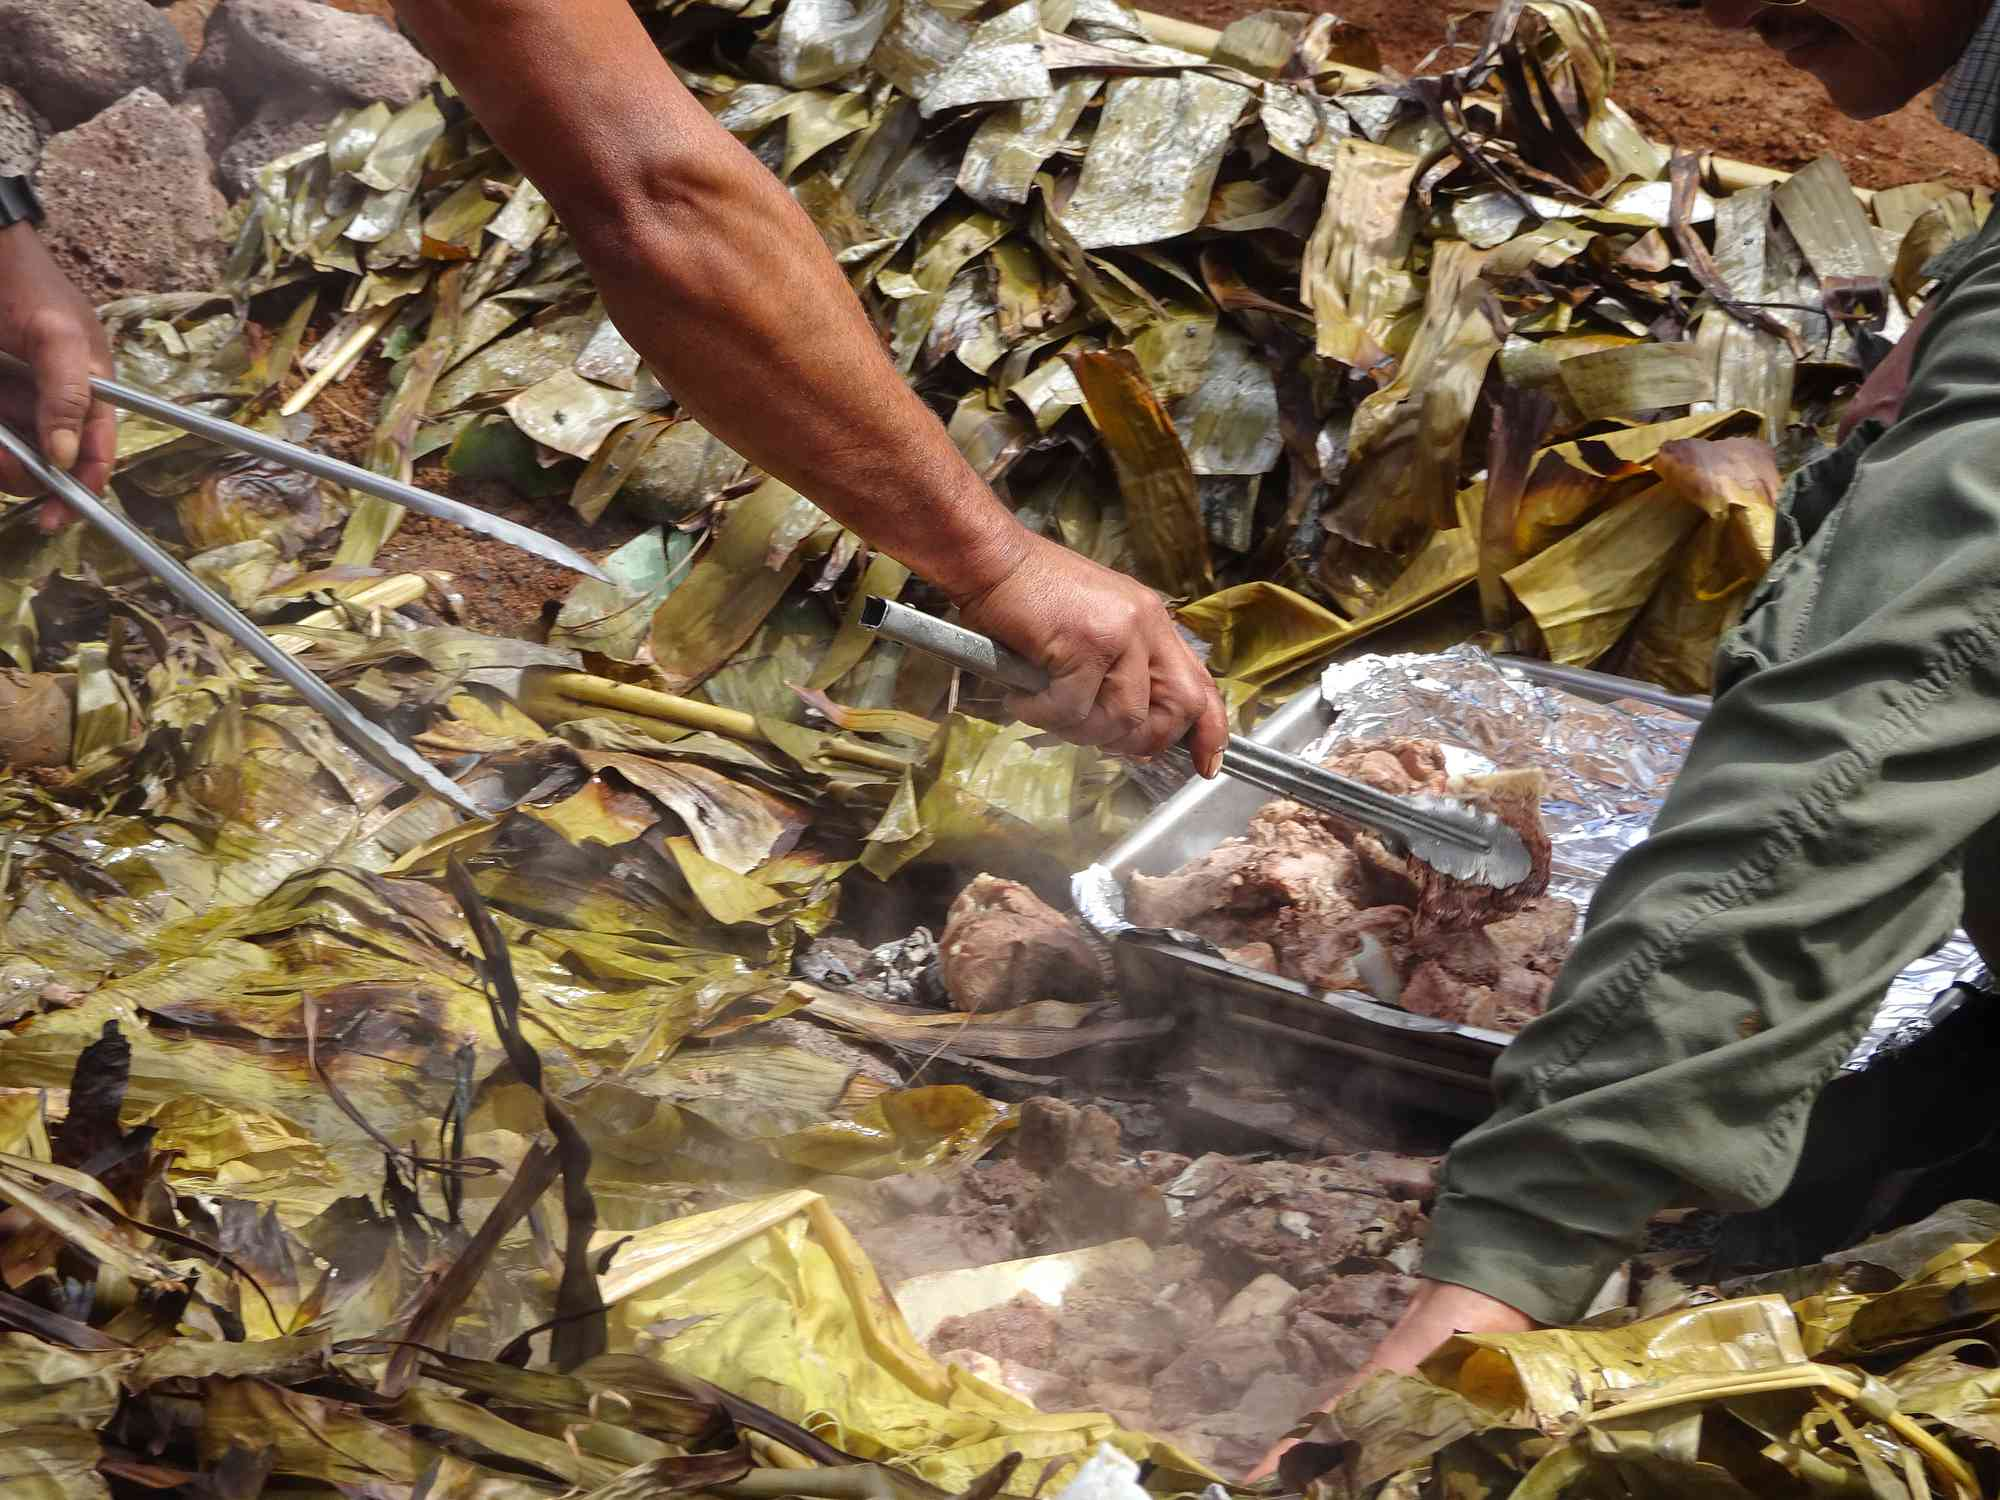 hands picking up meat from a tray in a pit of leaves